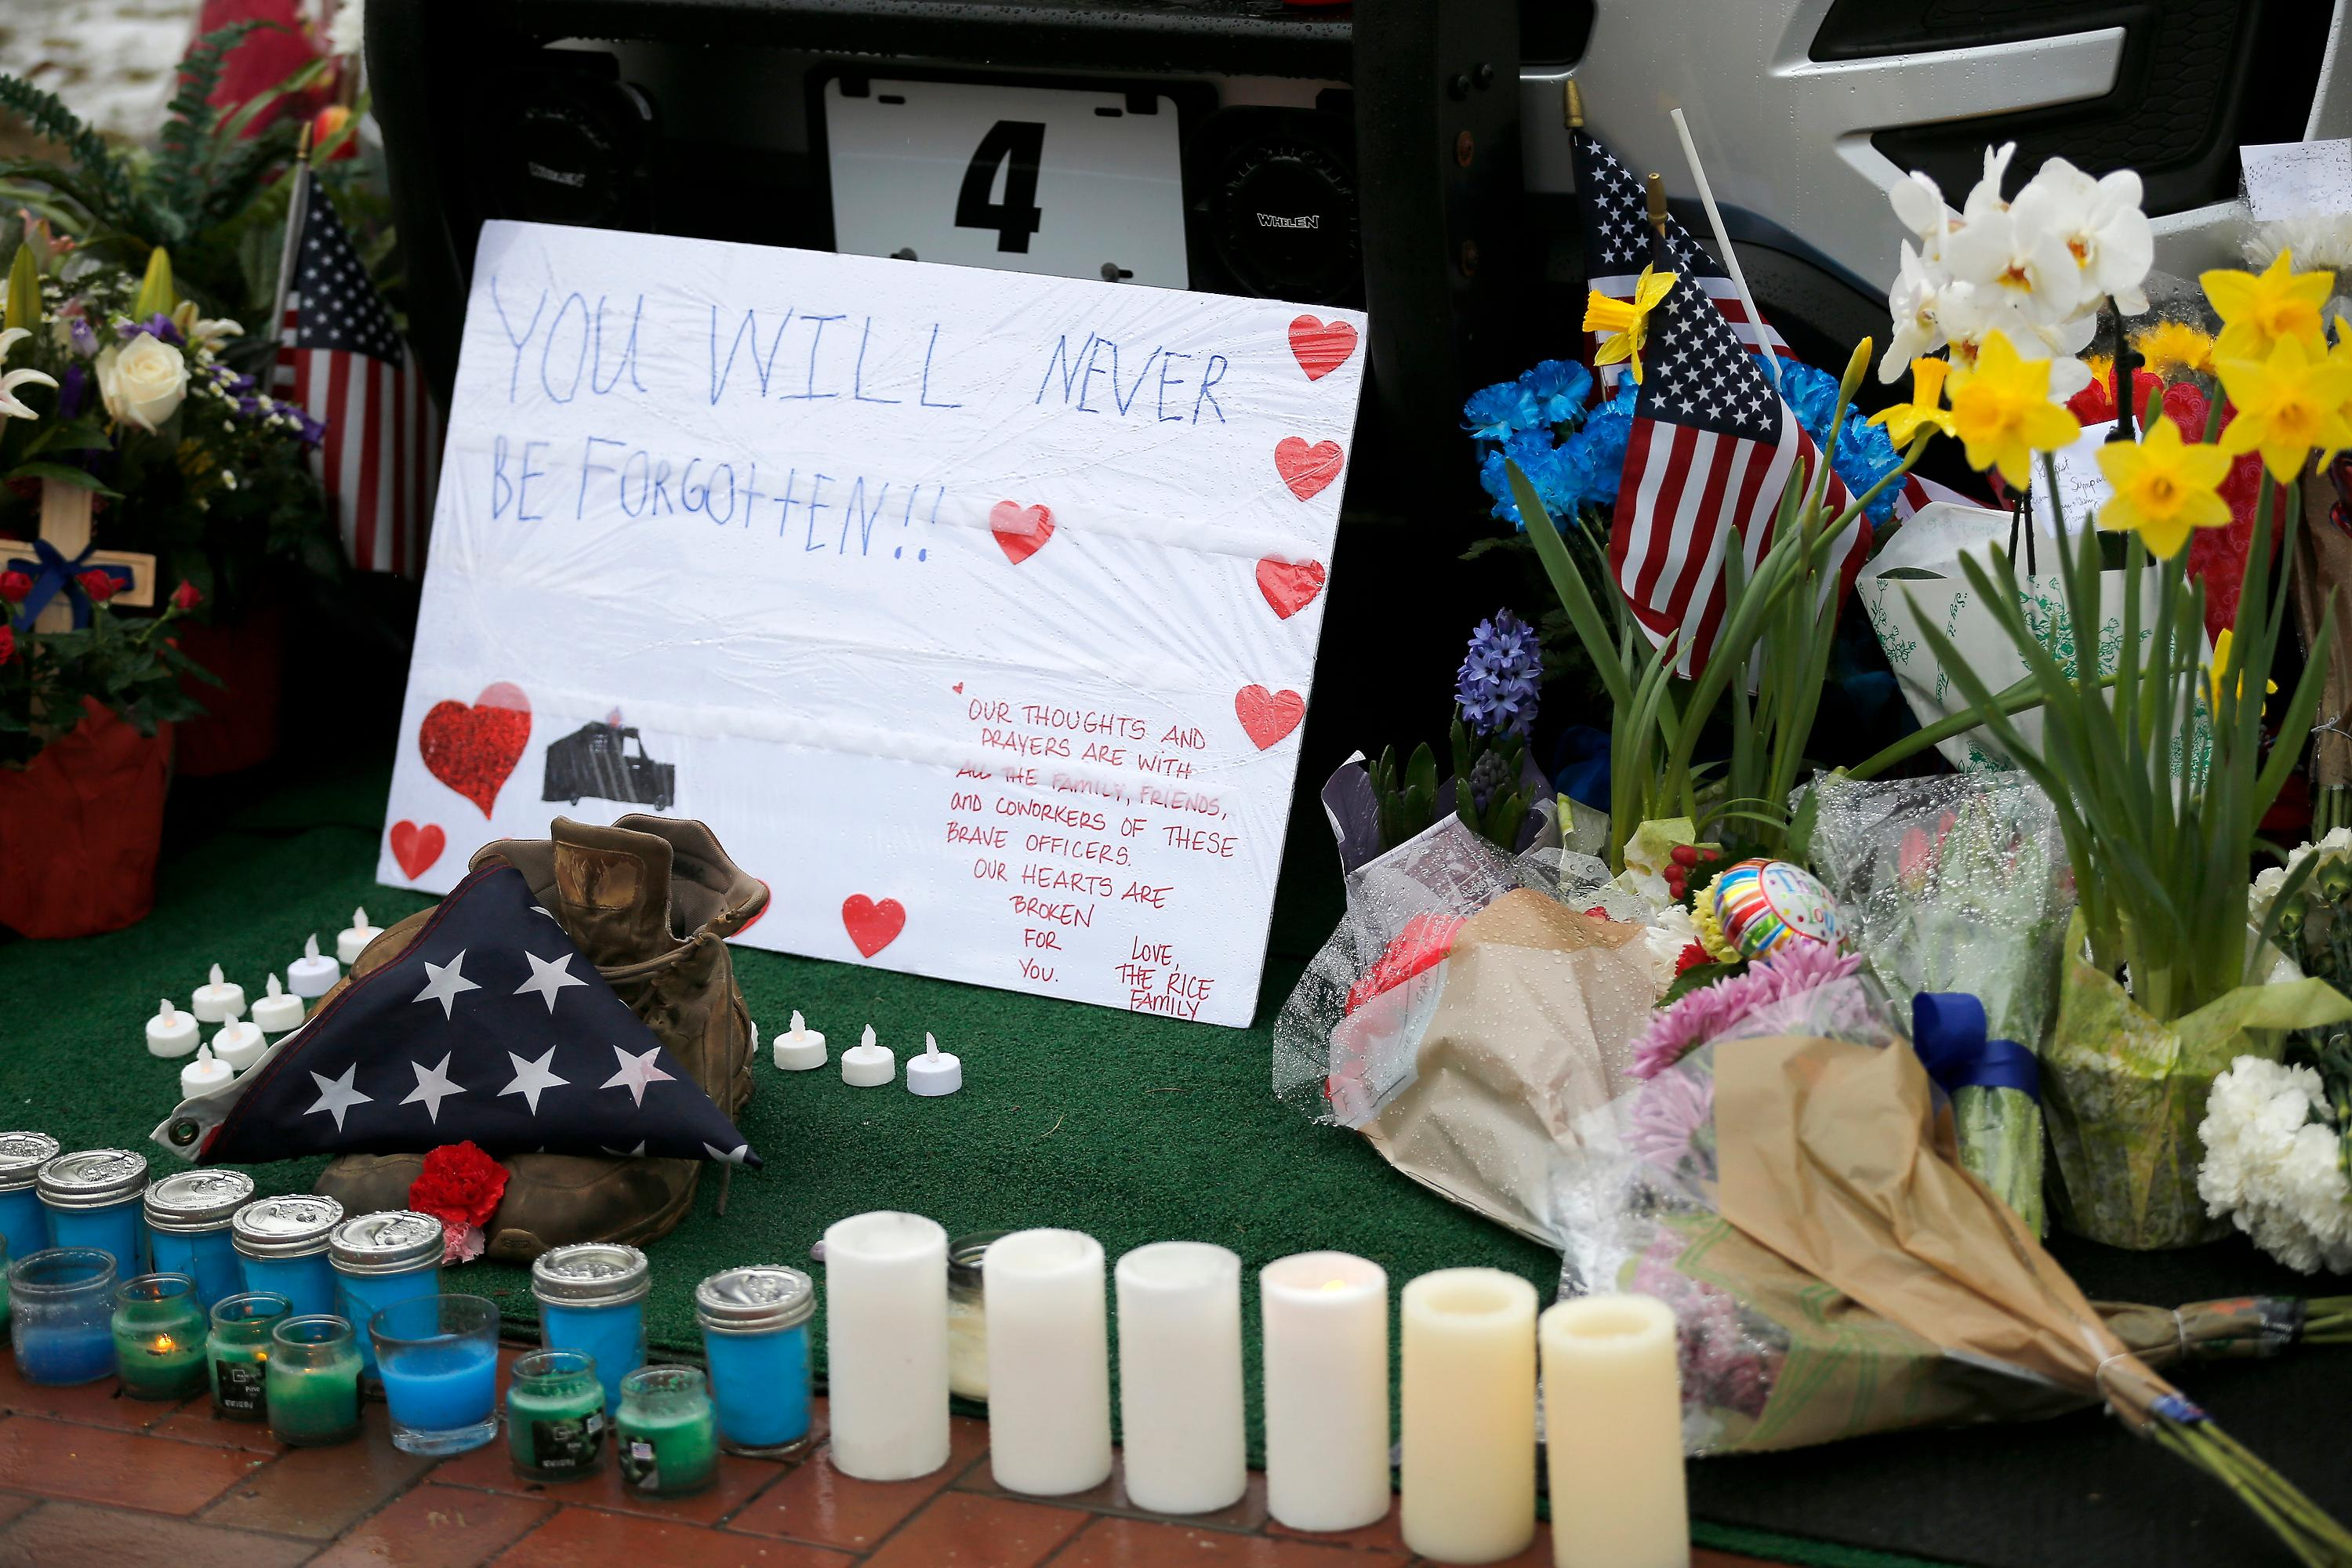 Mourners gather and leave flowers on a police cruiser parked in front of City Hall in Westerville, Ohio, on Sunday, Feb. 11, 2018. Westerville police officers Anthony Morelli and Eric Joering were killed in the line of duty Saturday when a suspect opened fire on them as they responded to a call at a residence.(Sam Greene/The Cincinnati Enquirer via AP)